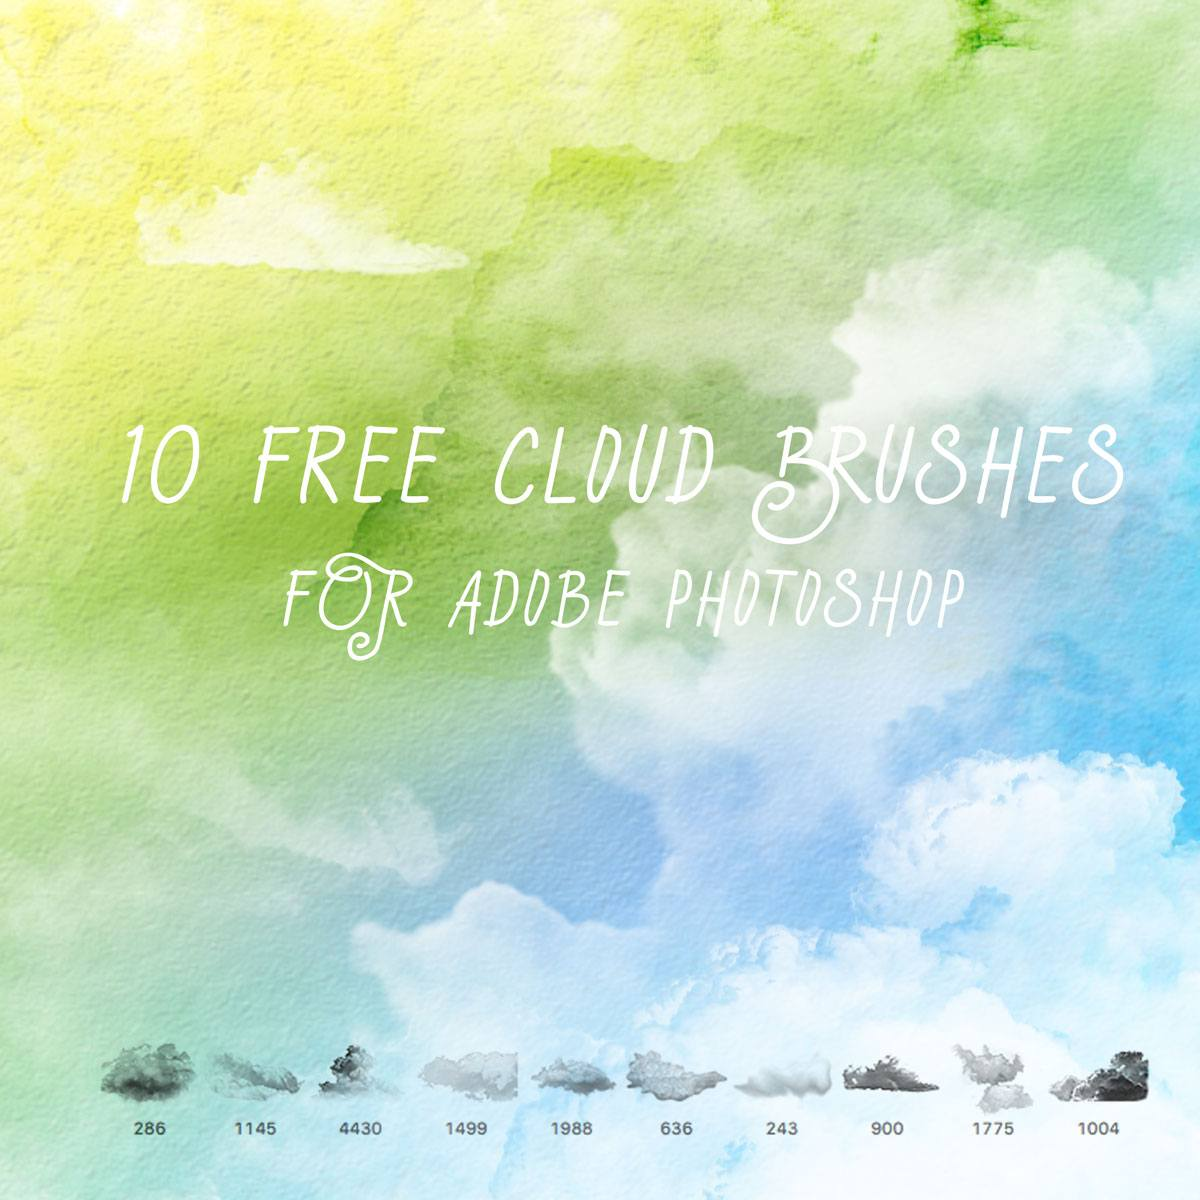 10 Free Cloud Brushes Photoshop brush